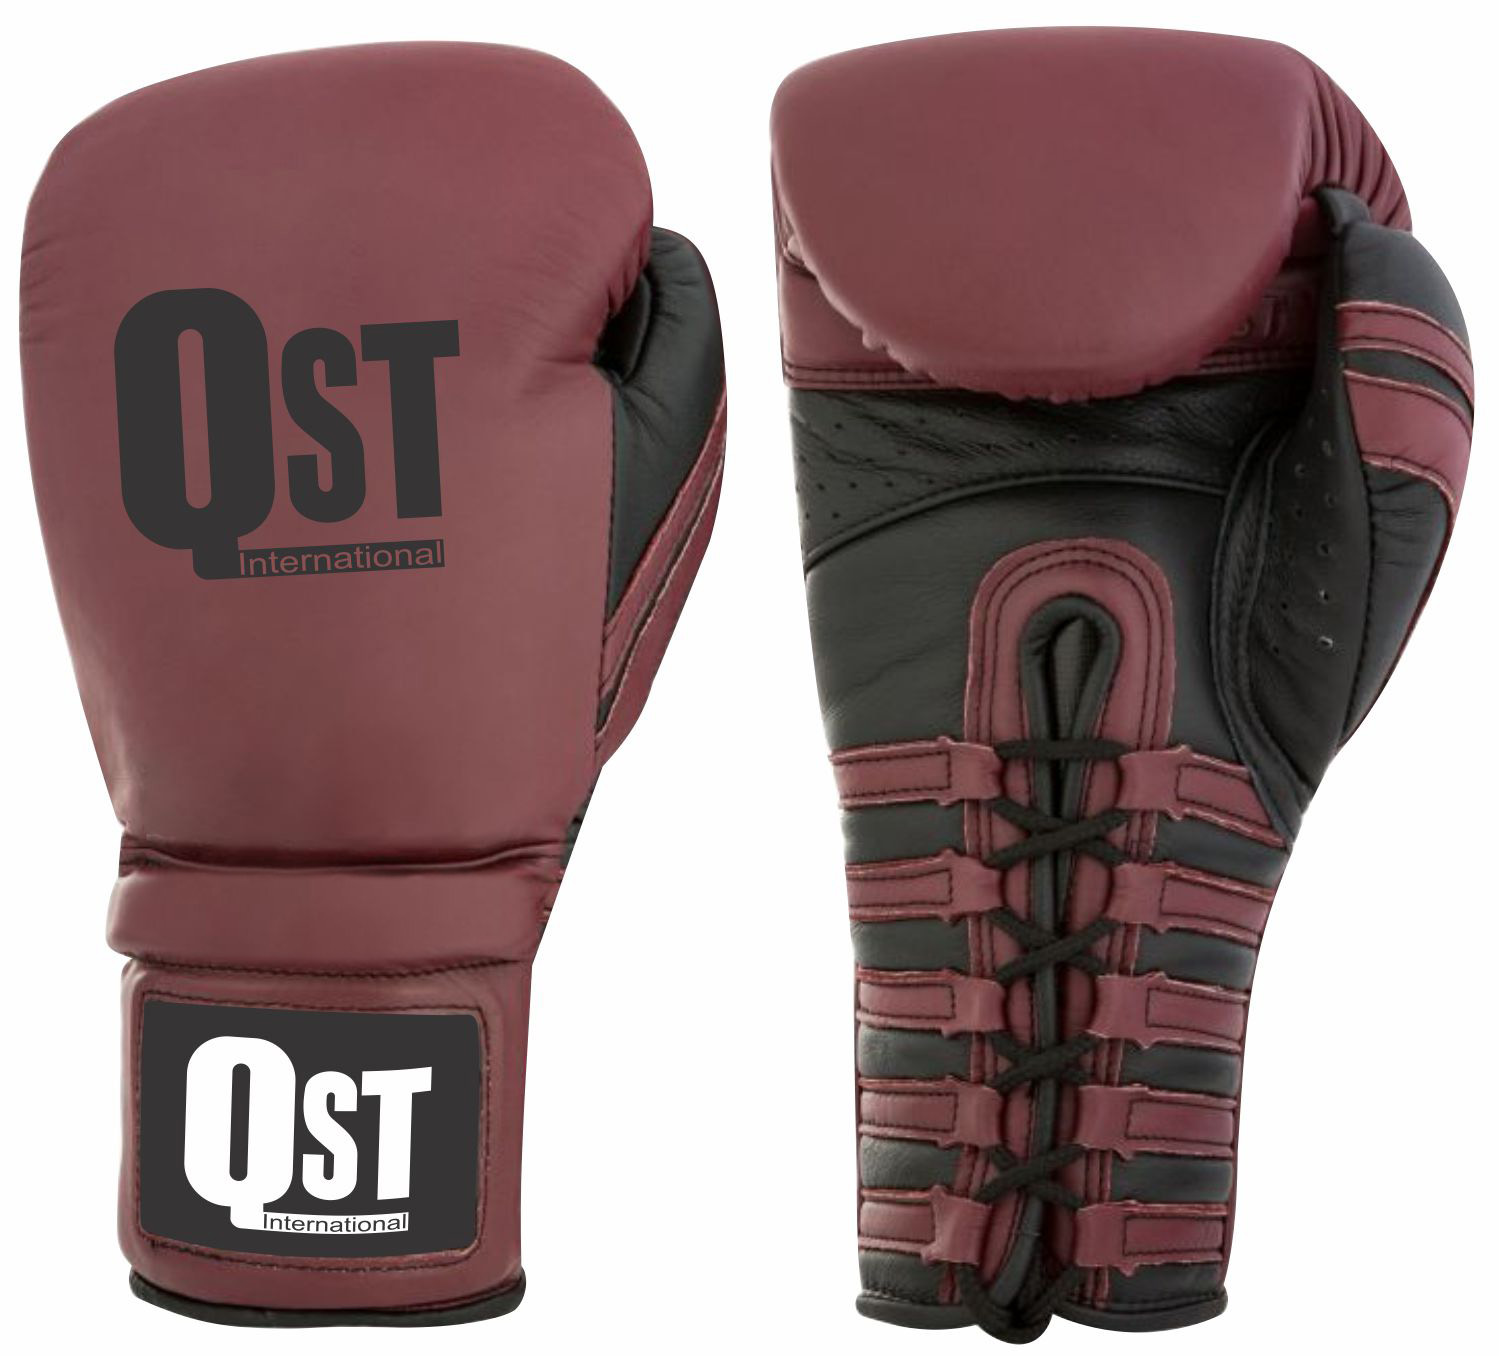 Lace up Boxing Gloves - PRG-3260